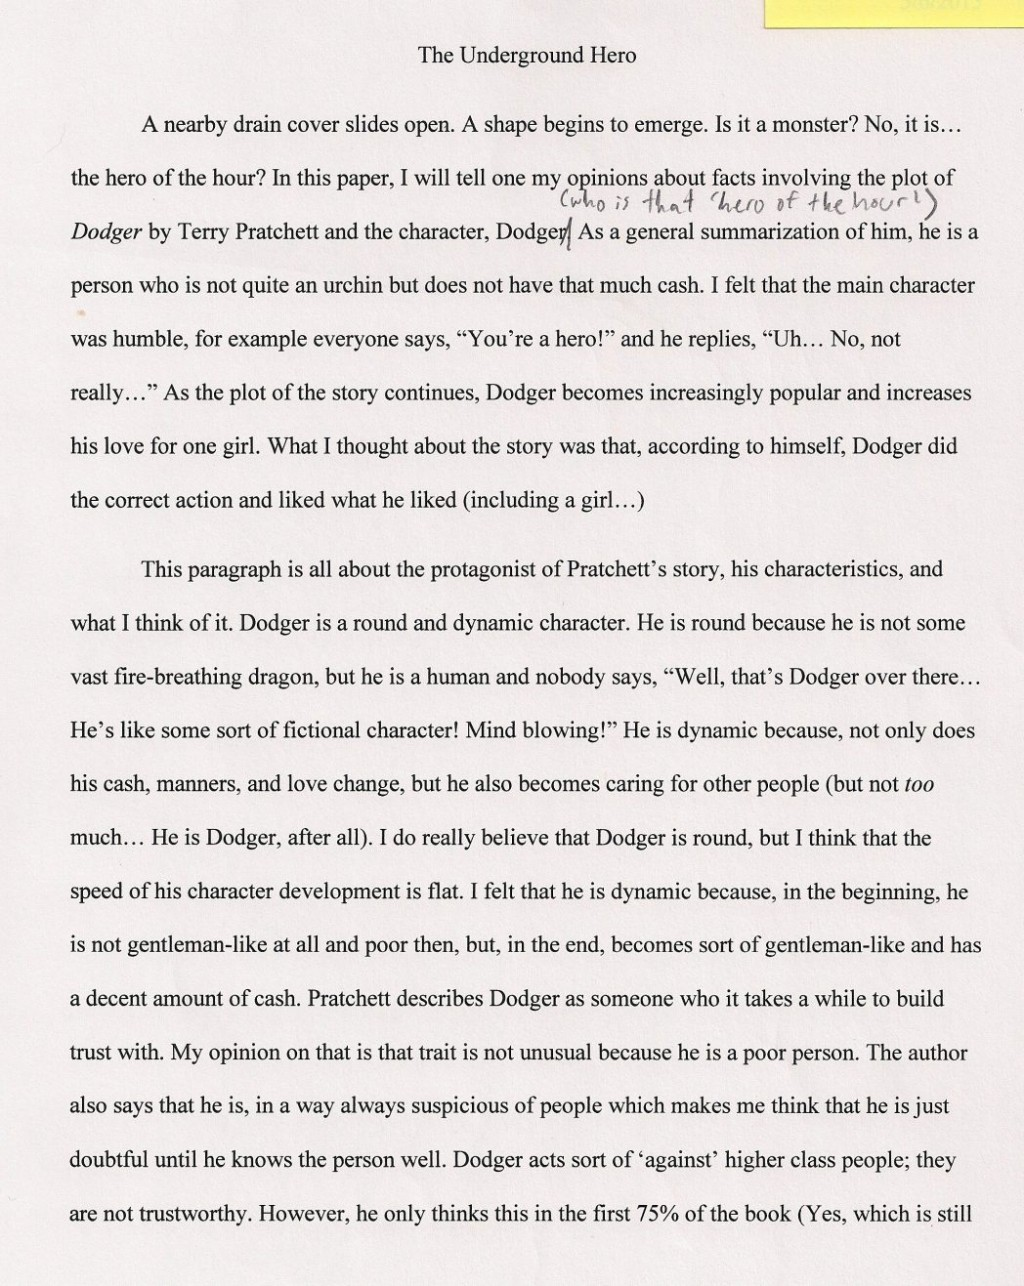 010 Satire Essay Global Warming On Heroes My Hero Essays How To Write An Argumentative The Undergro Persuasive About Study Mode Good Paper 1048x1317 Beautiful Examples Gun Control Questions Ideas Large